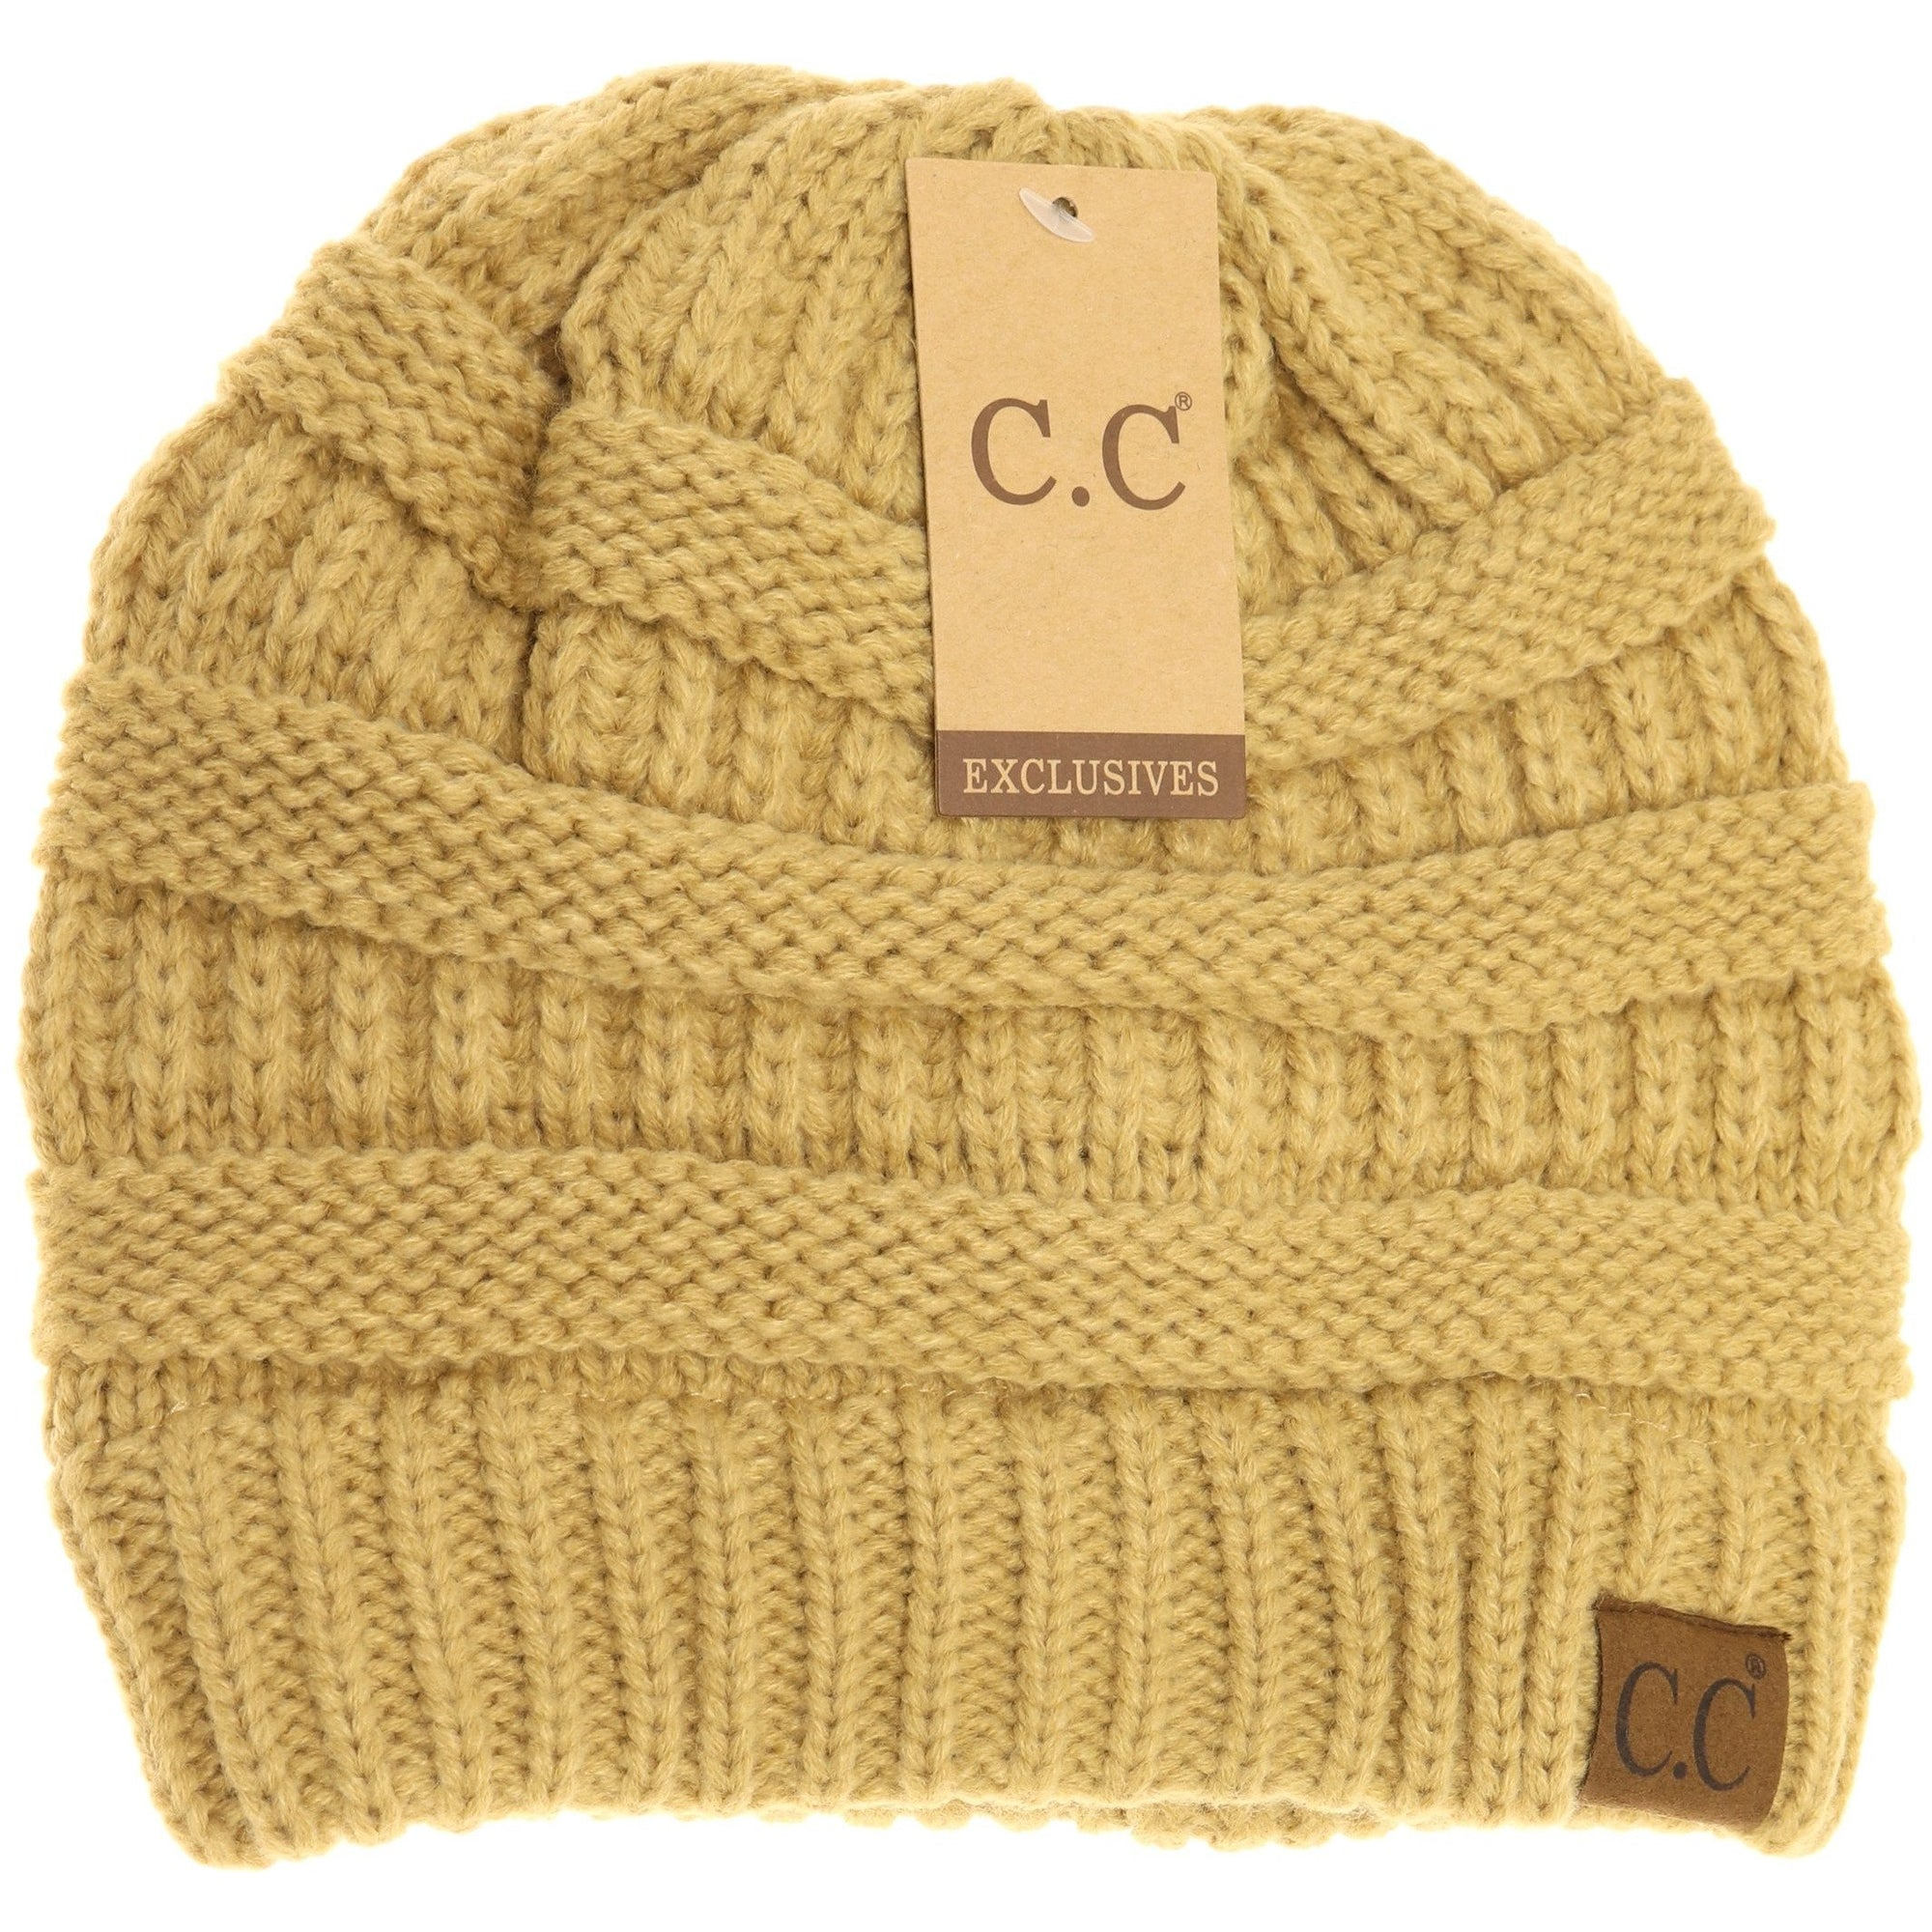 Classic Fuzzy Lined CC Beanie-Camel-[option4]-[option5]-[option6]-[option7]-[option8]-Womens-Clothing-Shop